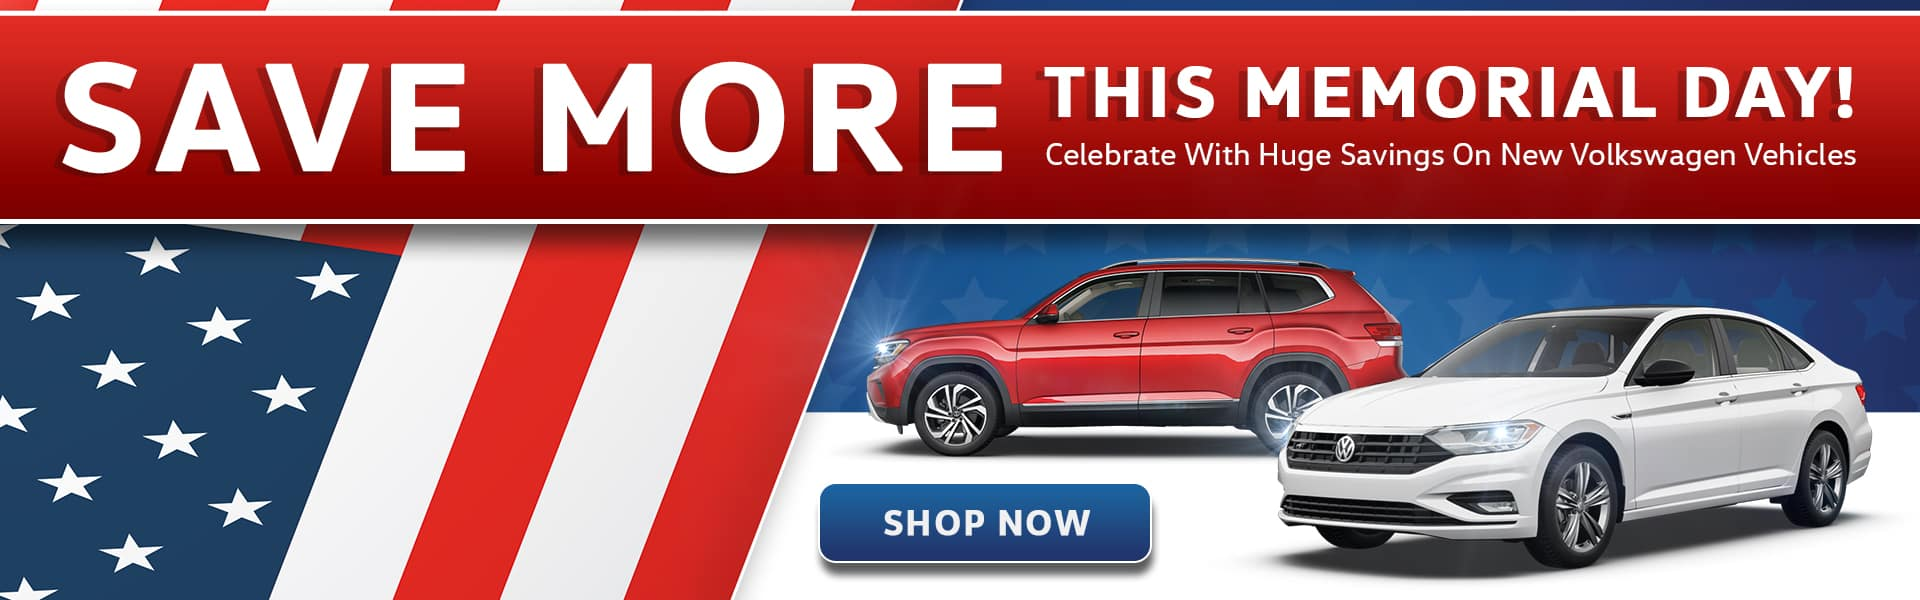 Save More This Memorial Day | Celebrate With Huge Savings On New Volkswagen Vehicles